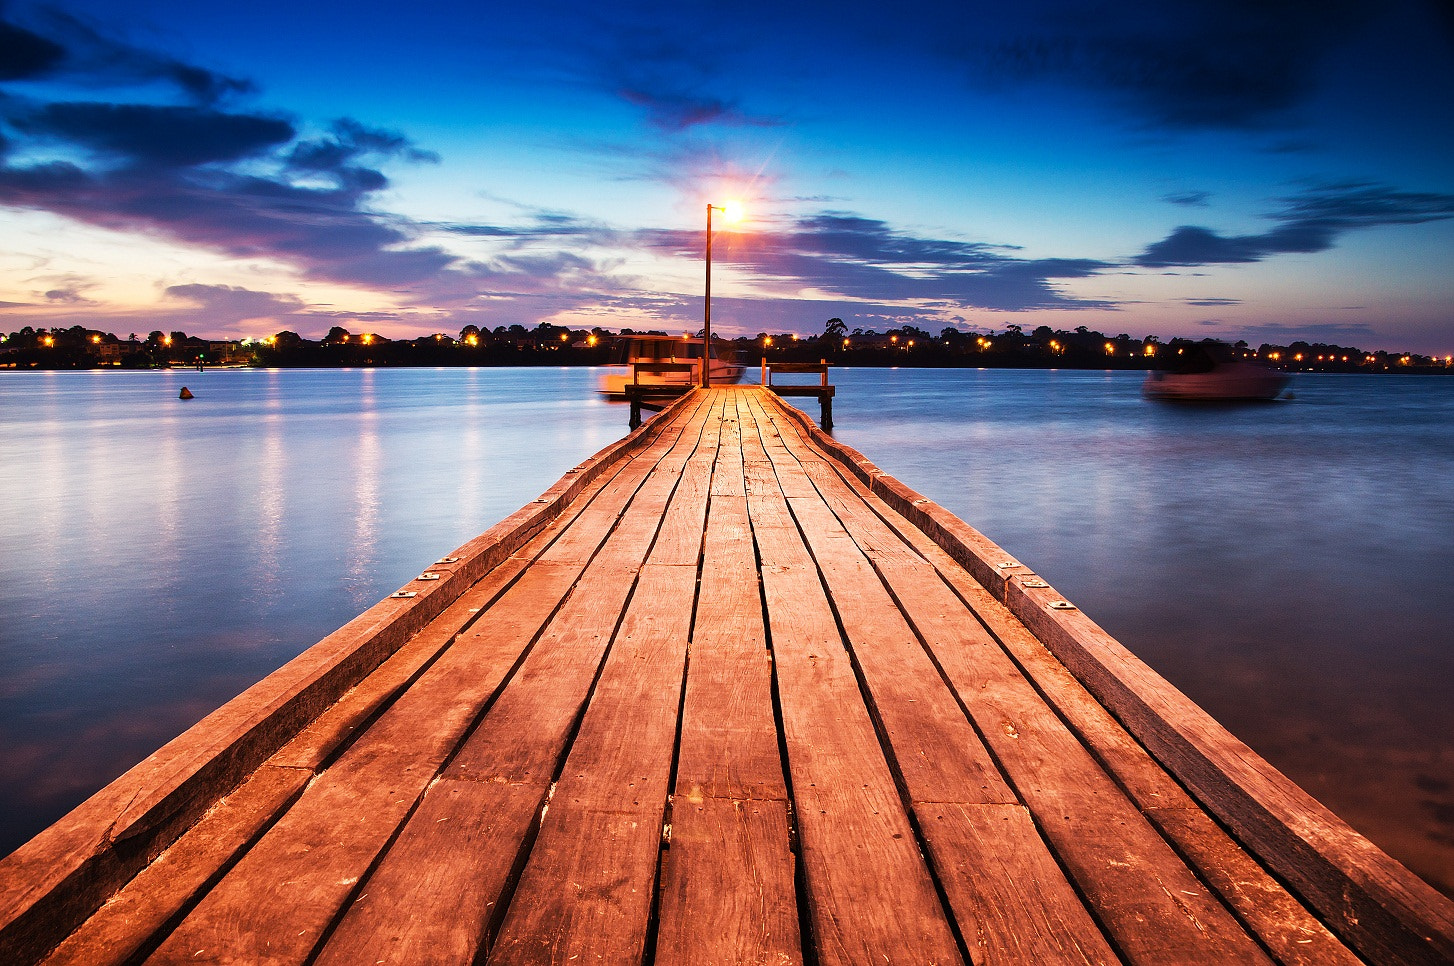 Photograph Deepwater jetty by Anthony Moore on 500px